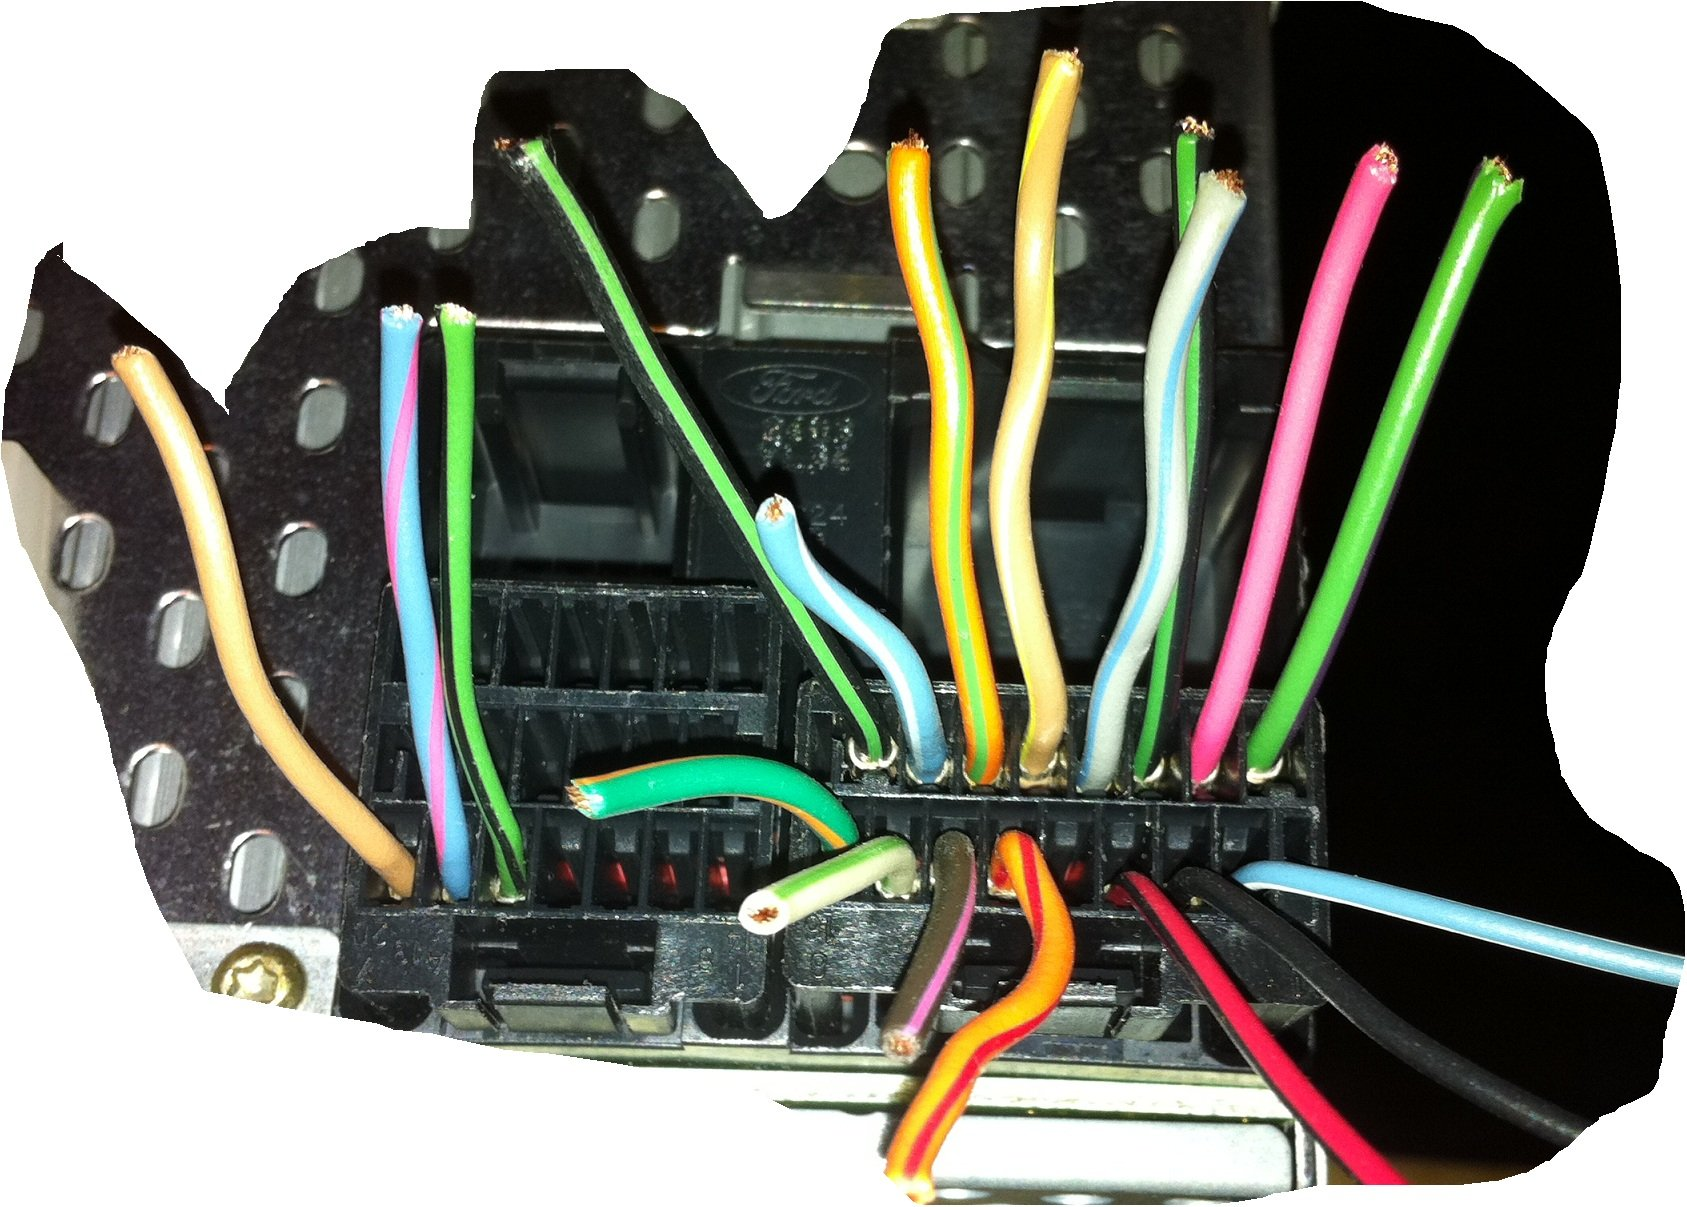 2011 06 24_023822_6 23 11_130 where can i find 2003 windstar radio color wire diagram most i've 2002 ford windstar radio wiring diagram at soozxer.org